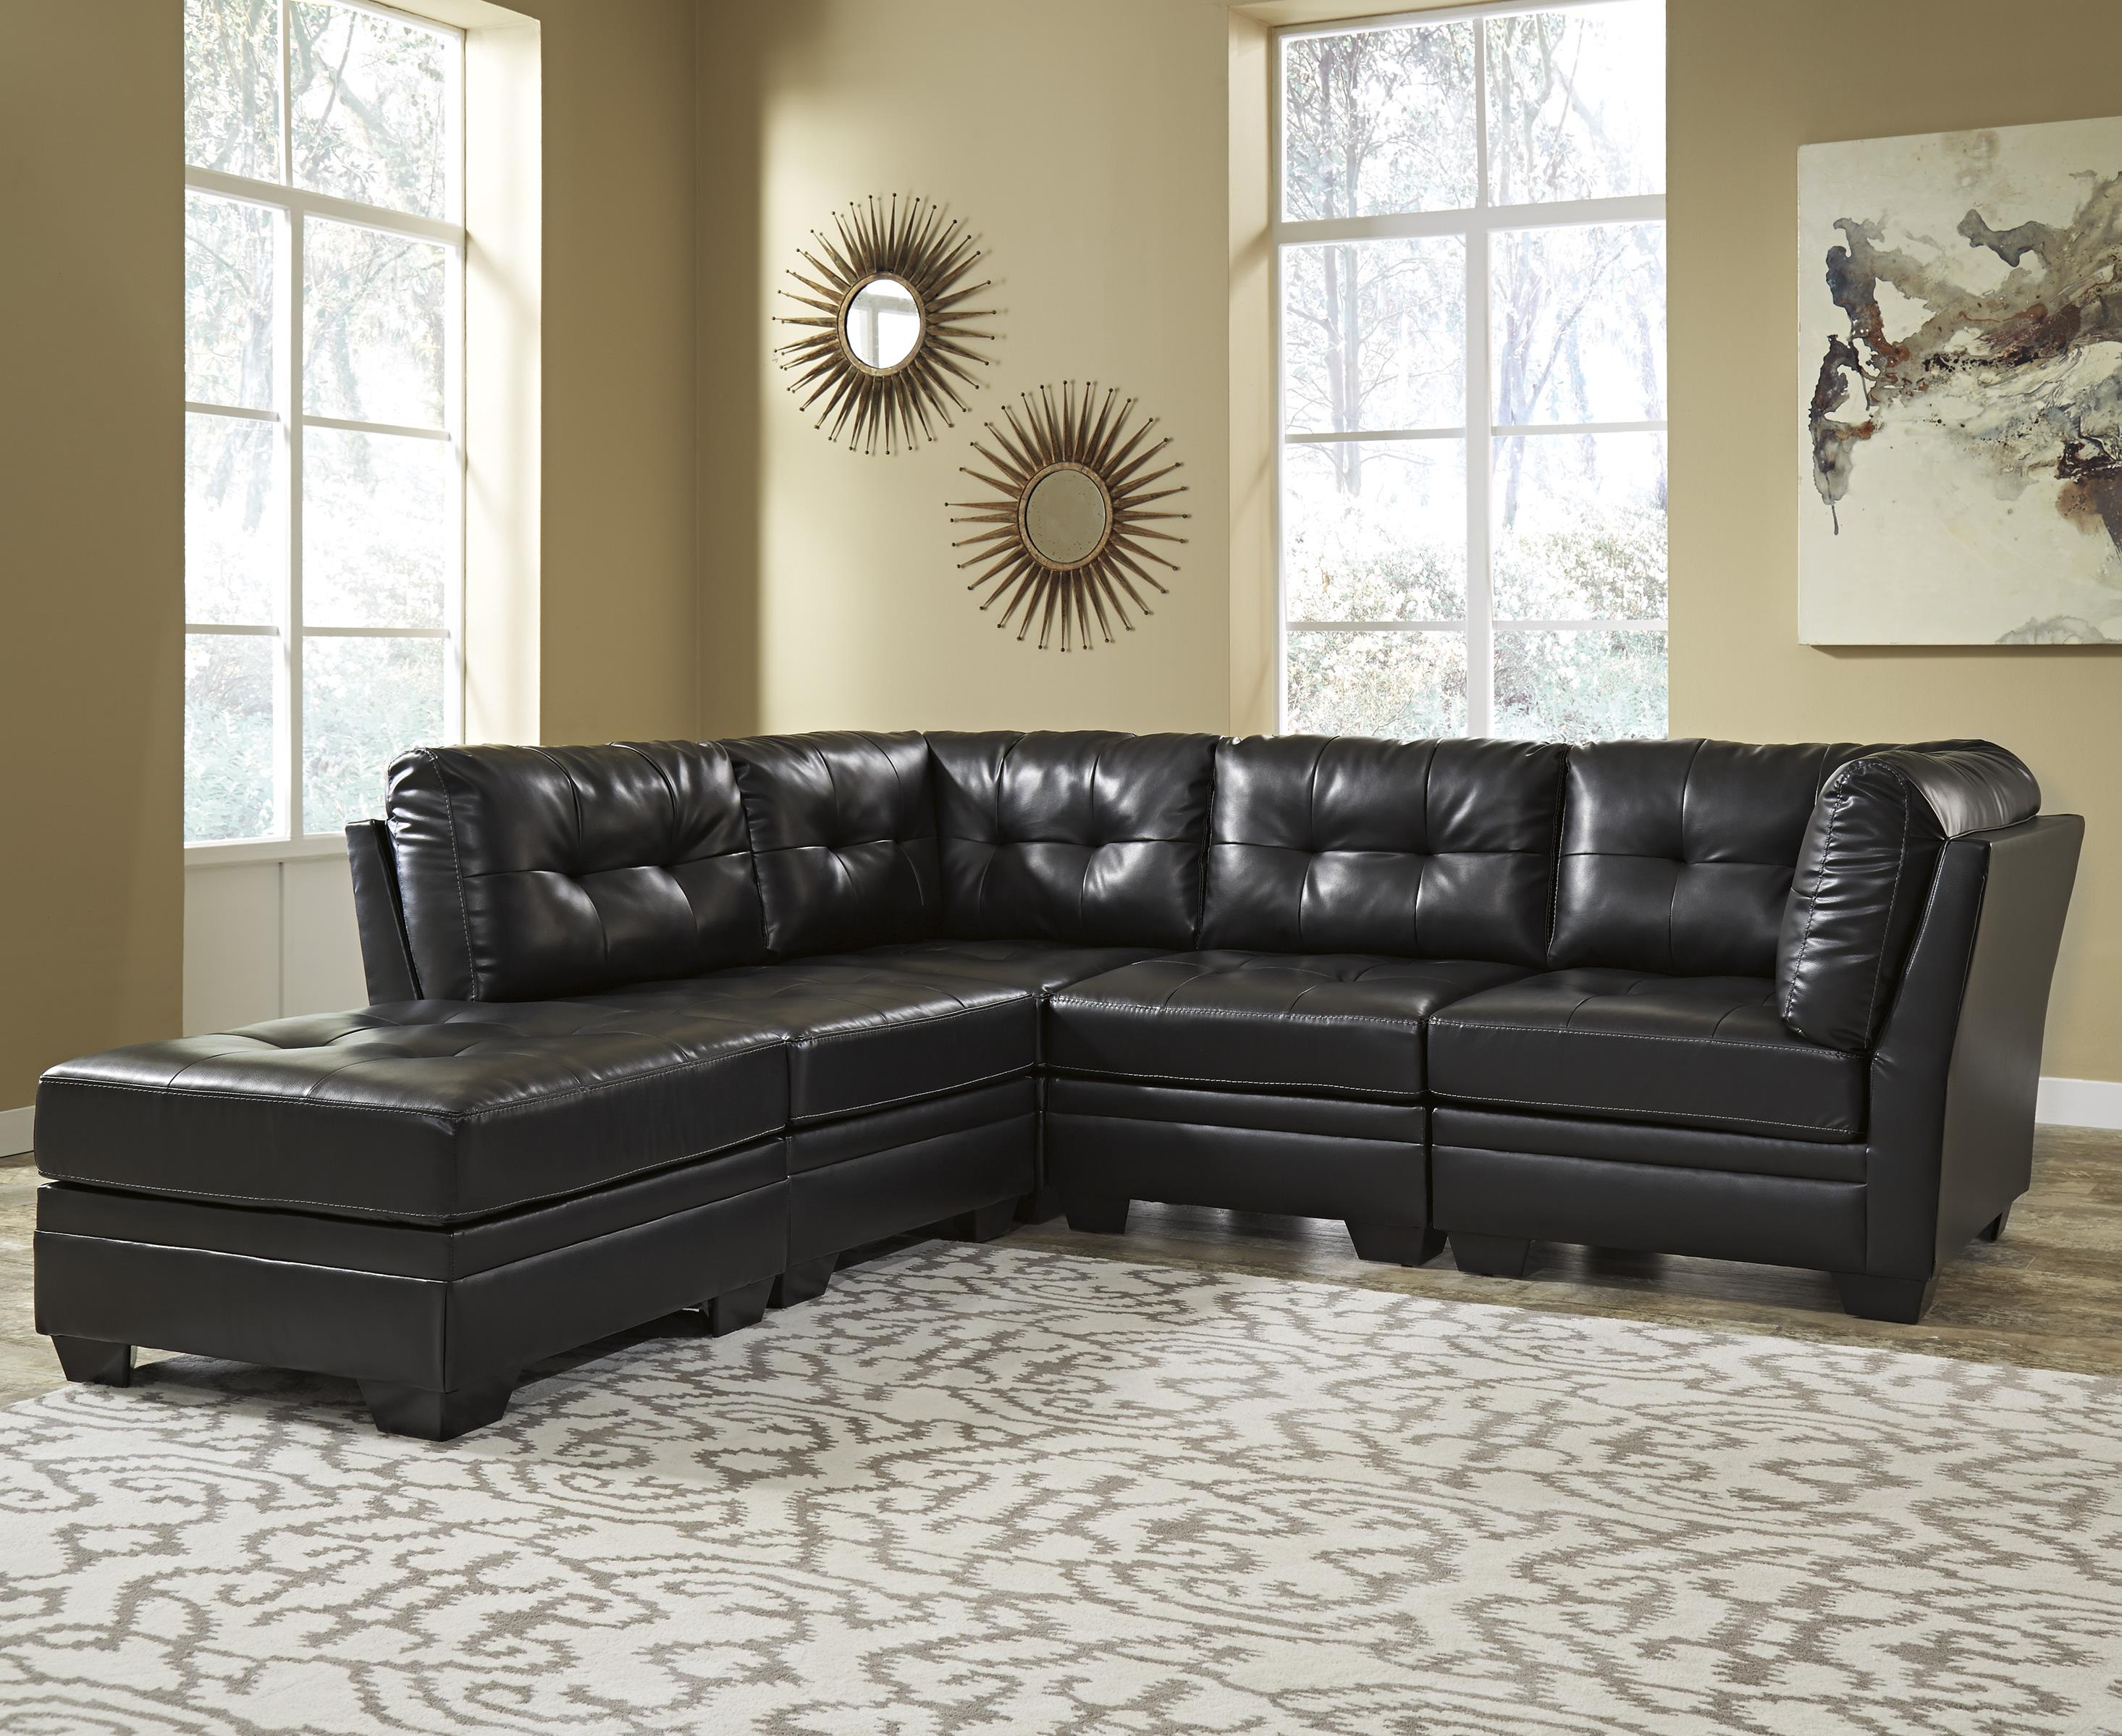 Signature Design by Ashley Khalil DuraBlend® 5-Piece Modular Sectional - Item Number: 6180508+2x46+2x51